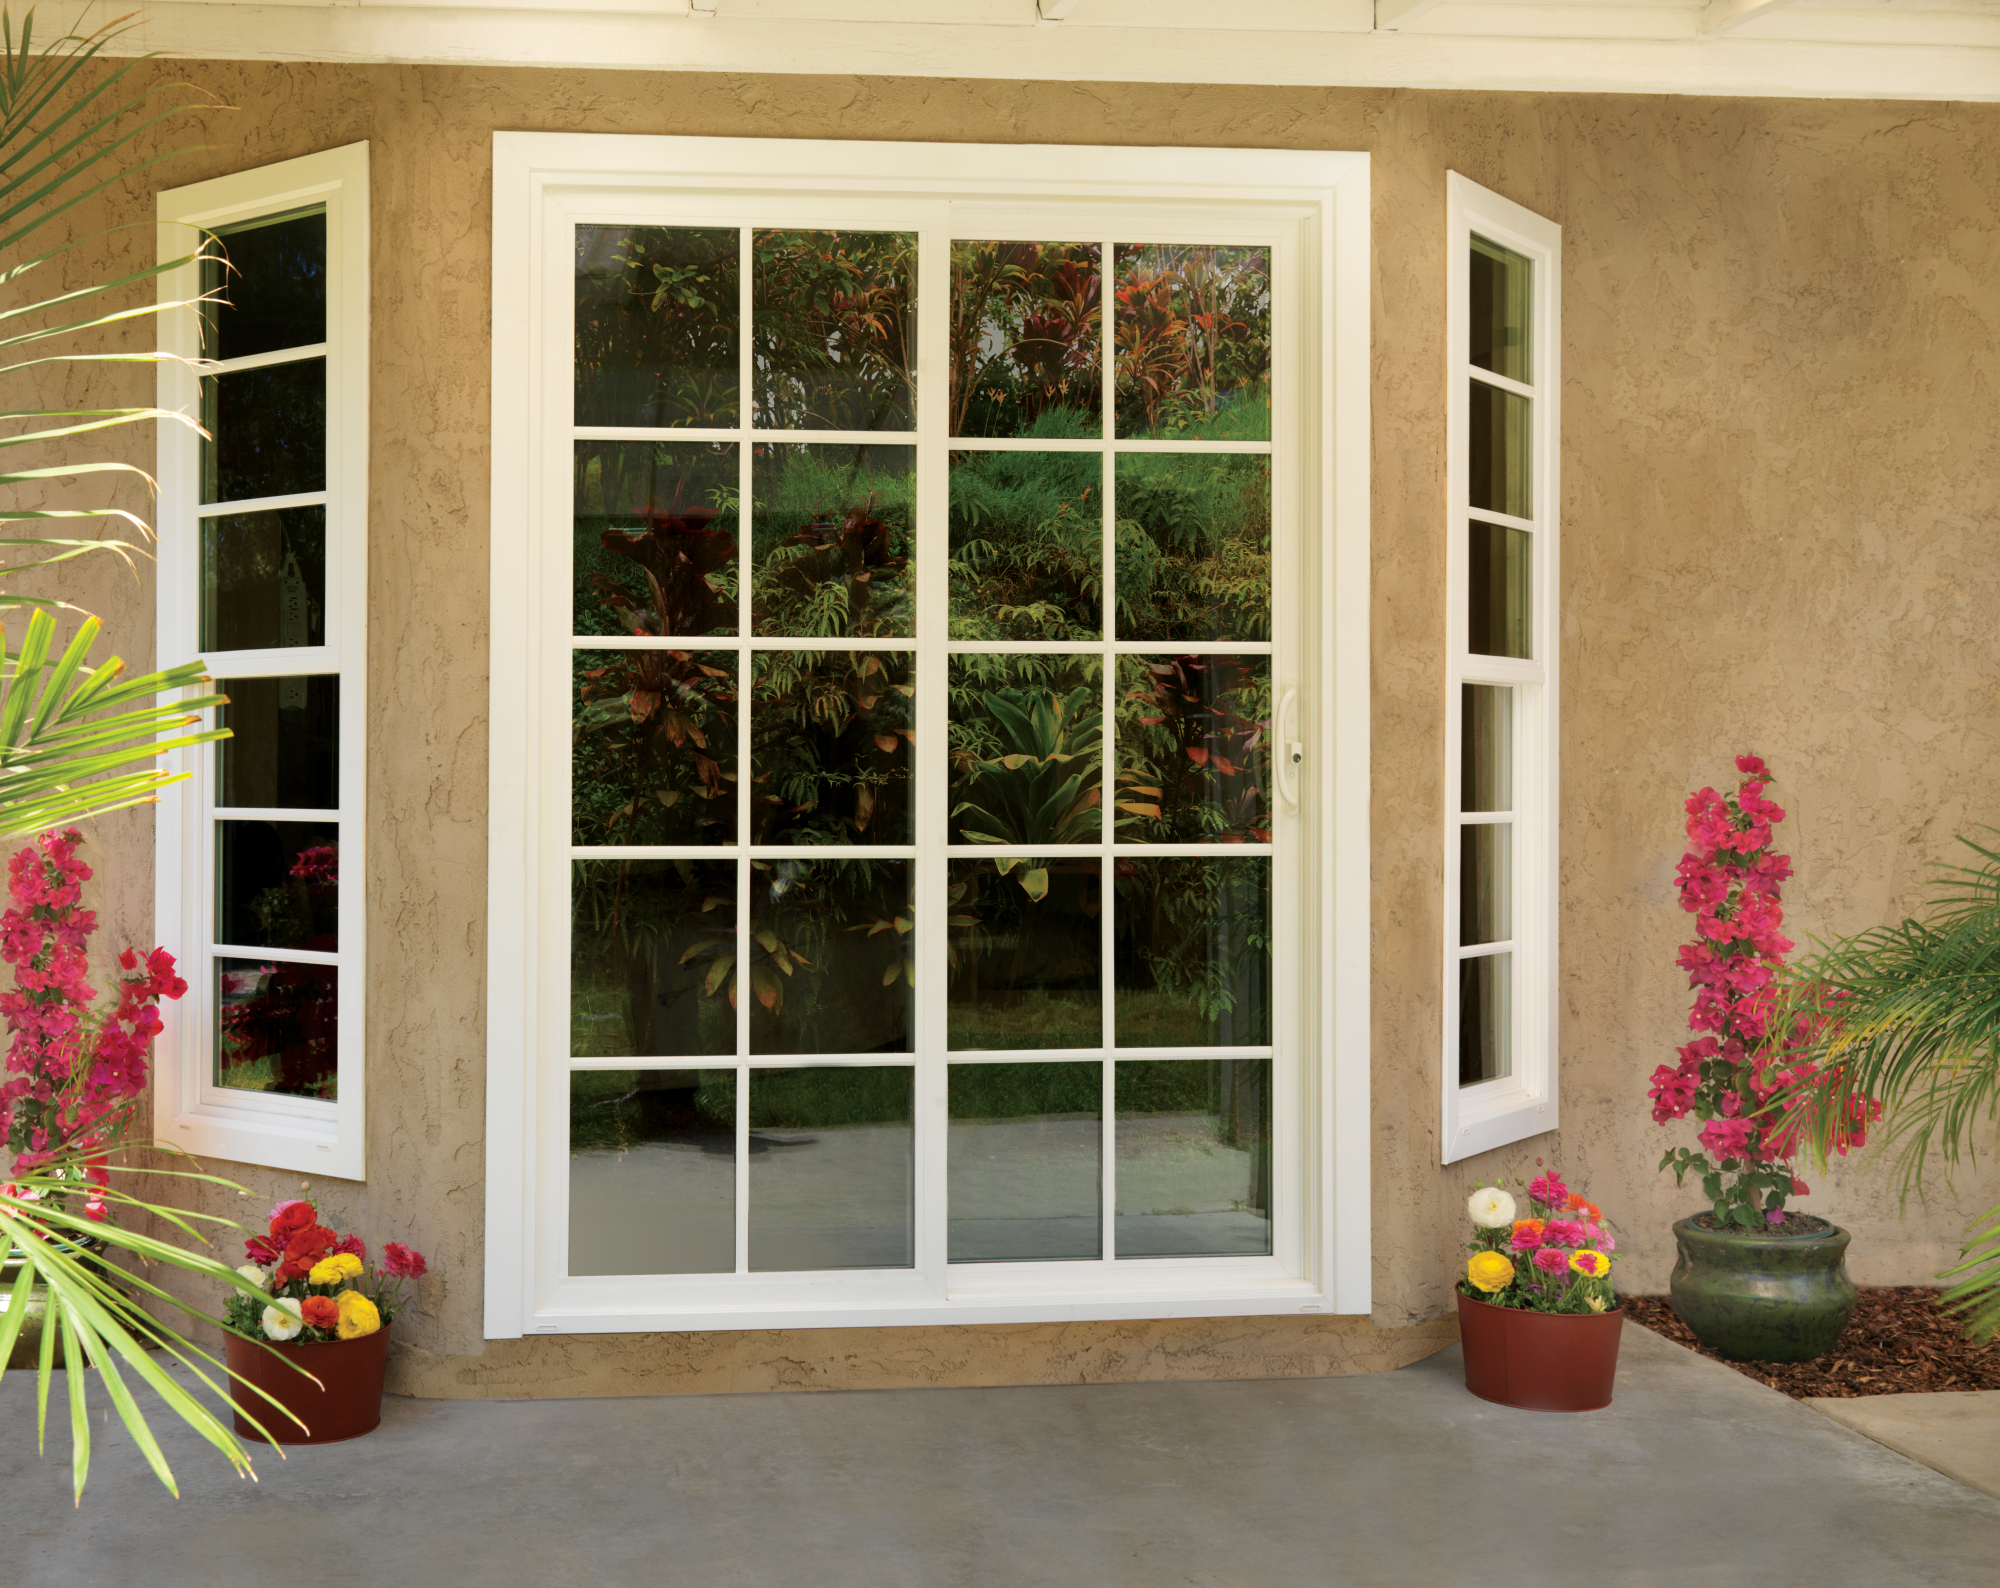 Premium Vinyl Sliding Patio Door Jeld Wen Windows Doors